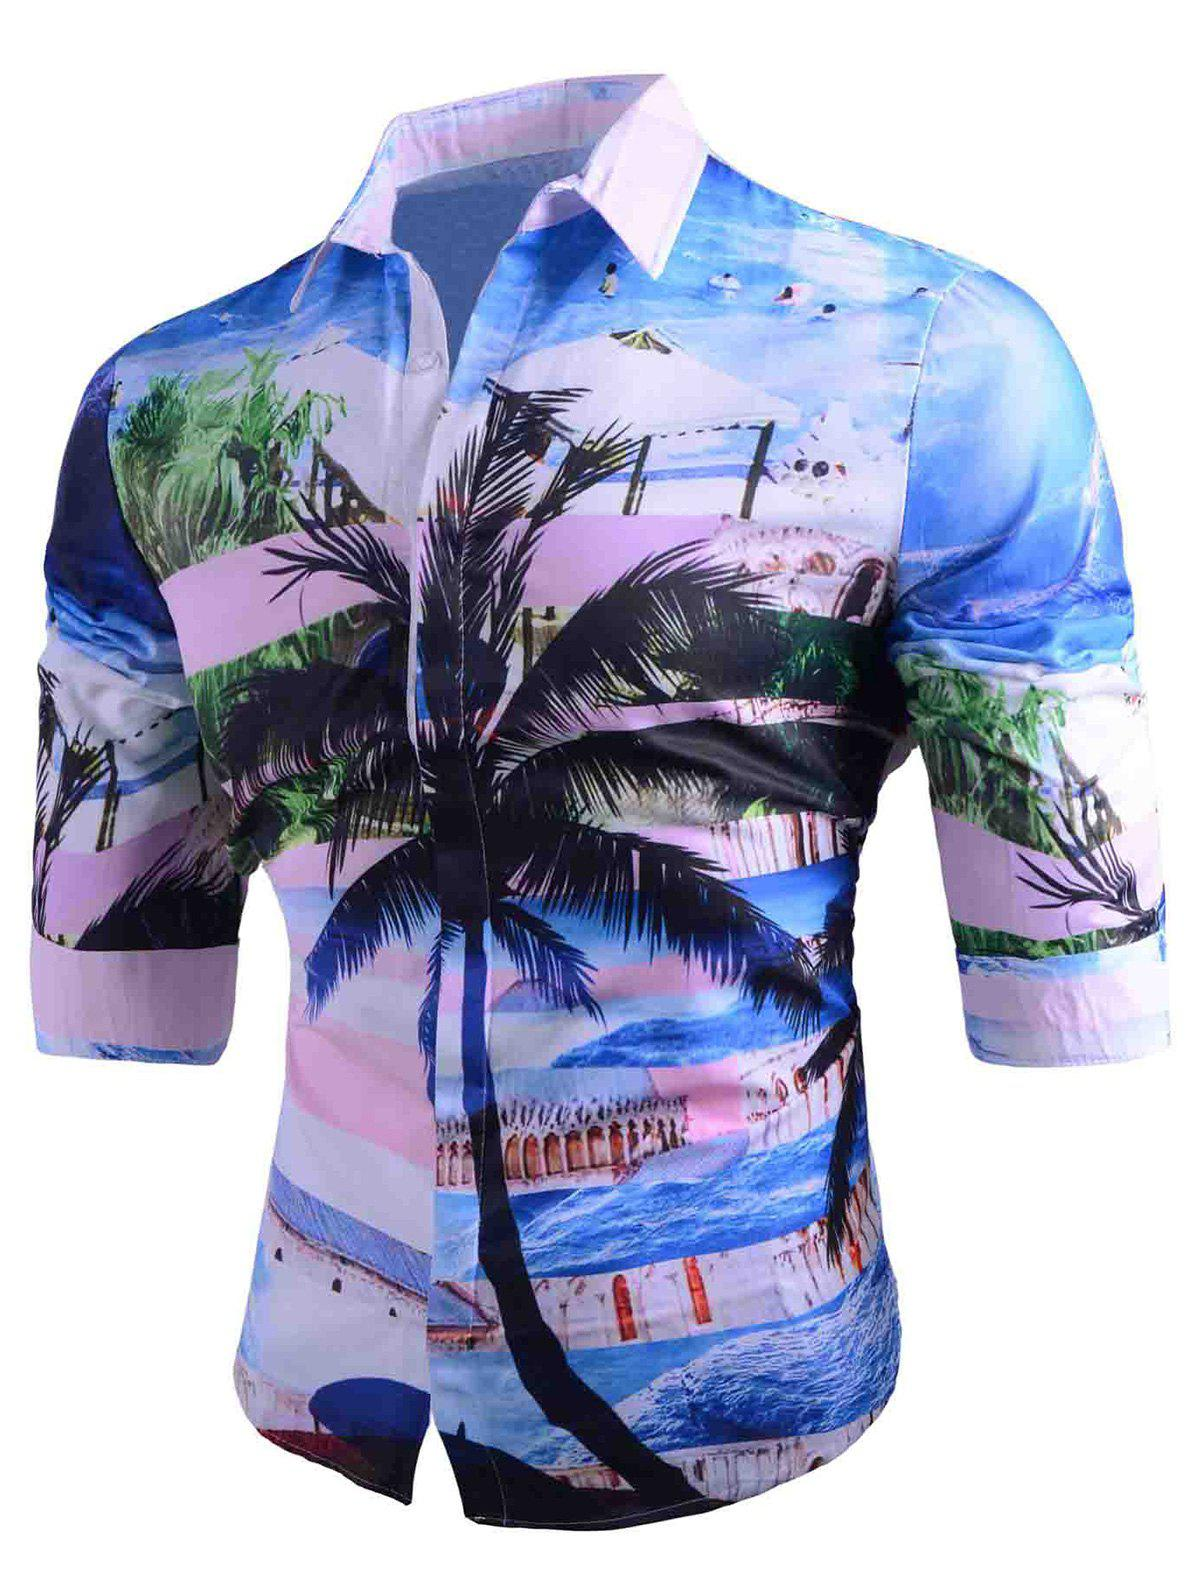 3D Coconut Tree Tropical Print Hawaiian Casual Shirt women wear double penis strap on dildo pants for lesbian gay sex toys strapon harness dildos anal butt plug strap ons panties